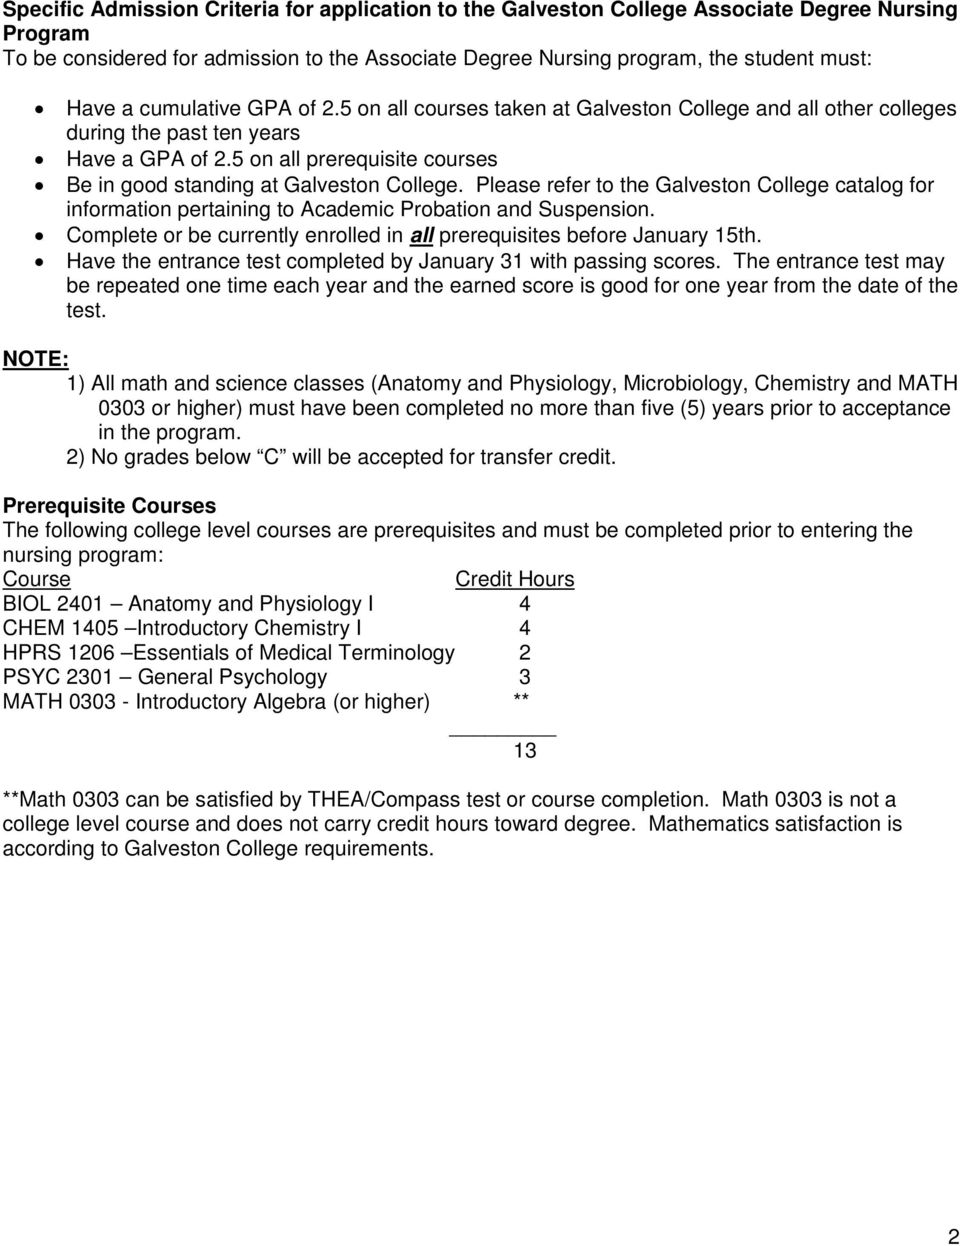 Please refer to the Galveston College catalog for information pertaining to Academic Probation and Suspension. Complete or be currently enrolled in all prerequisites before January 15th.